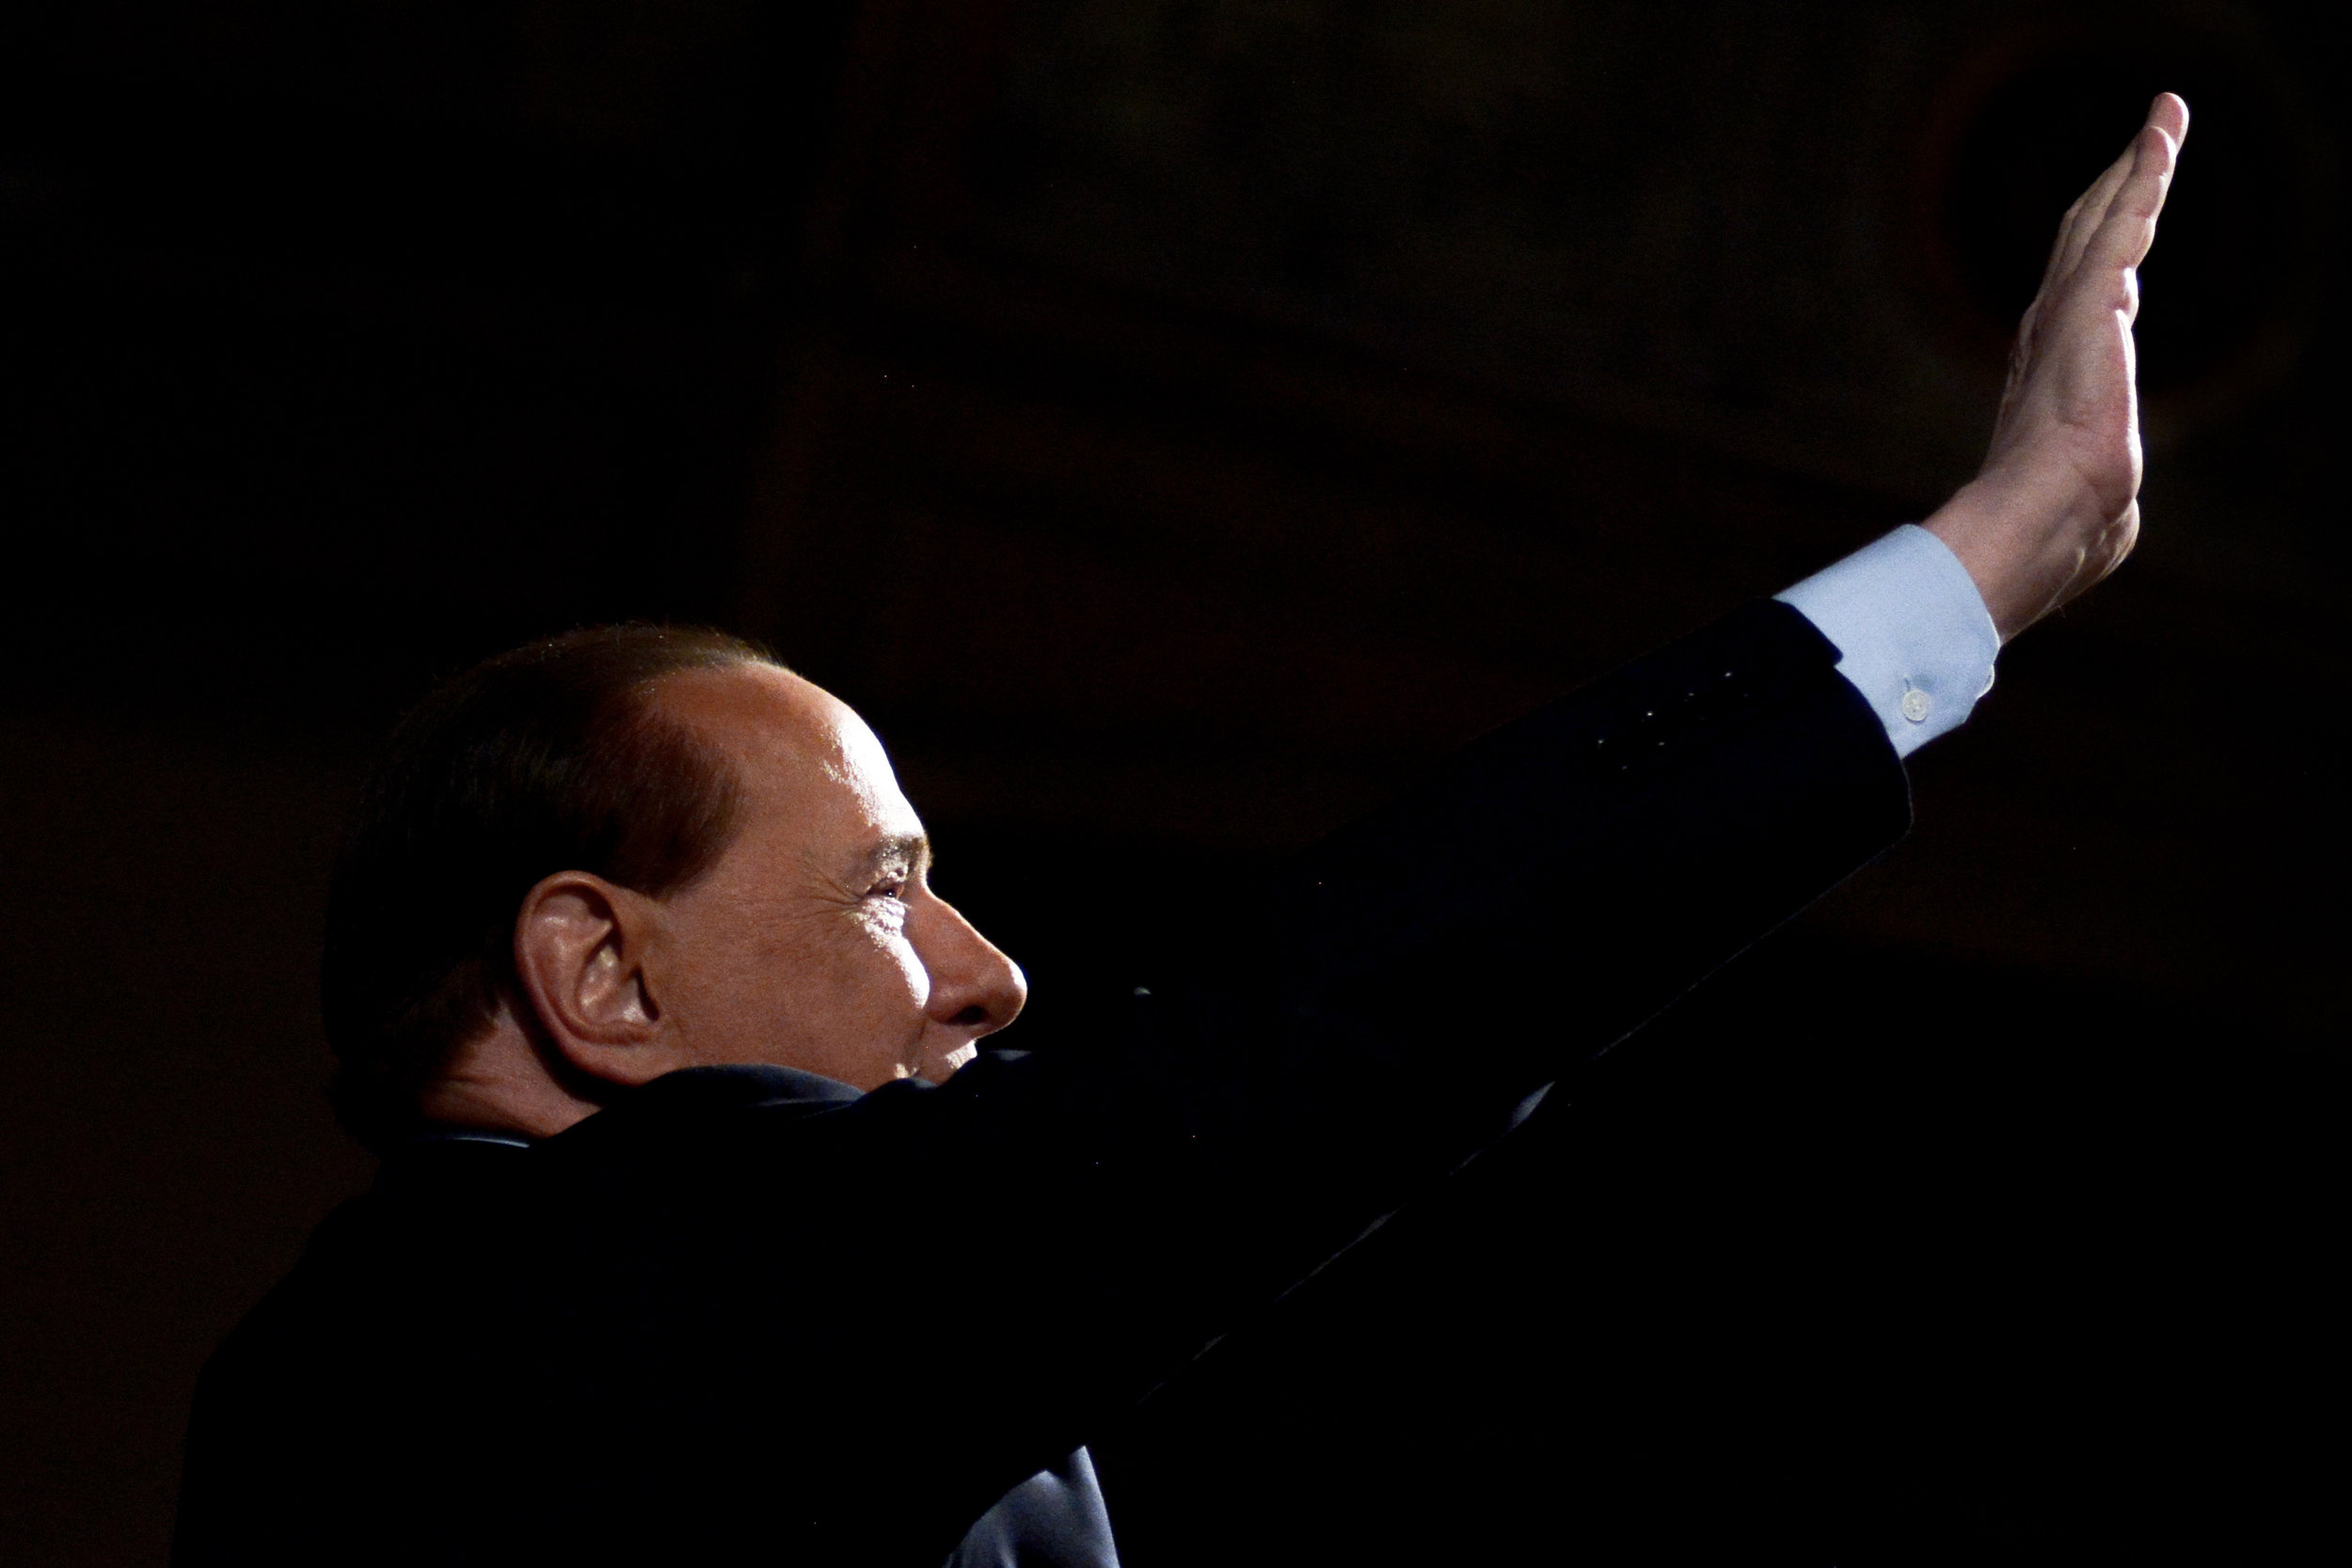 Forza Italia party leader Silvio Berlusconi waves to supporters after a rally in Palermo, Italy, March 19, 2016.